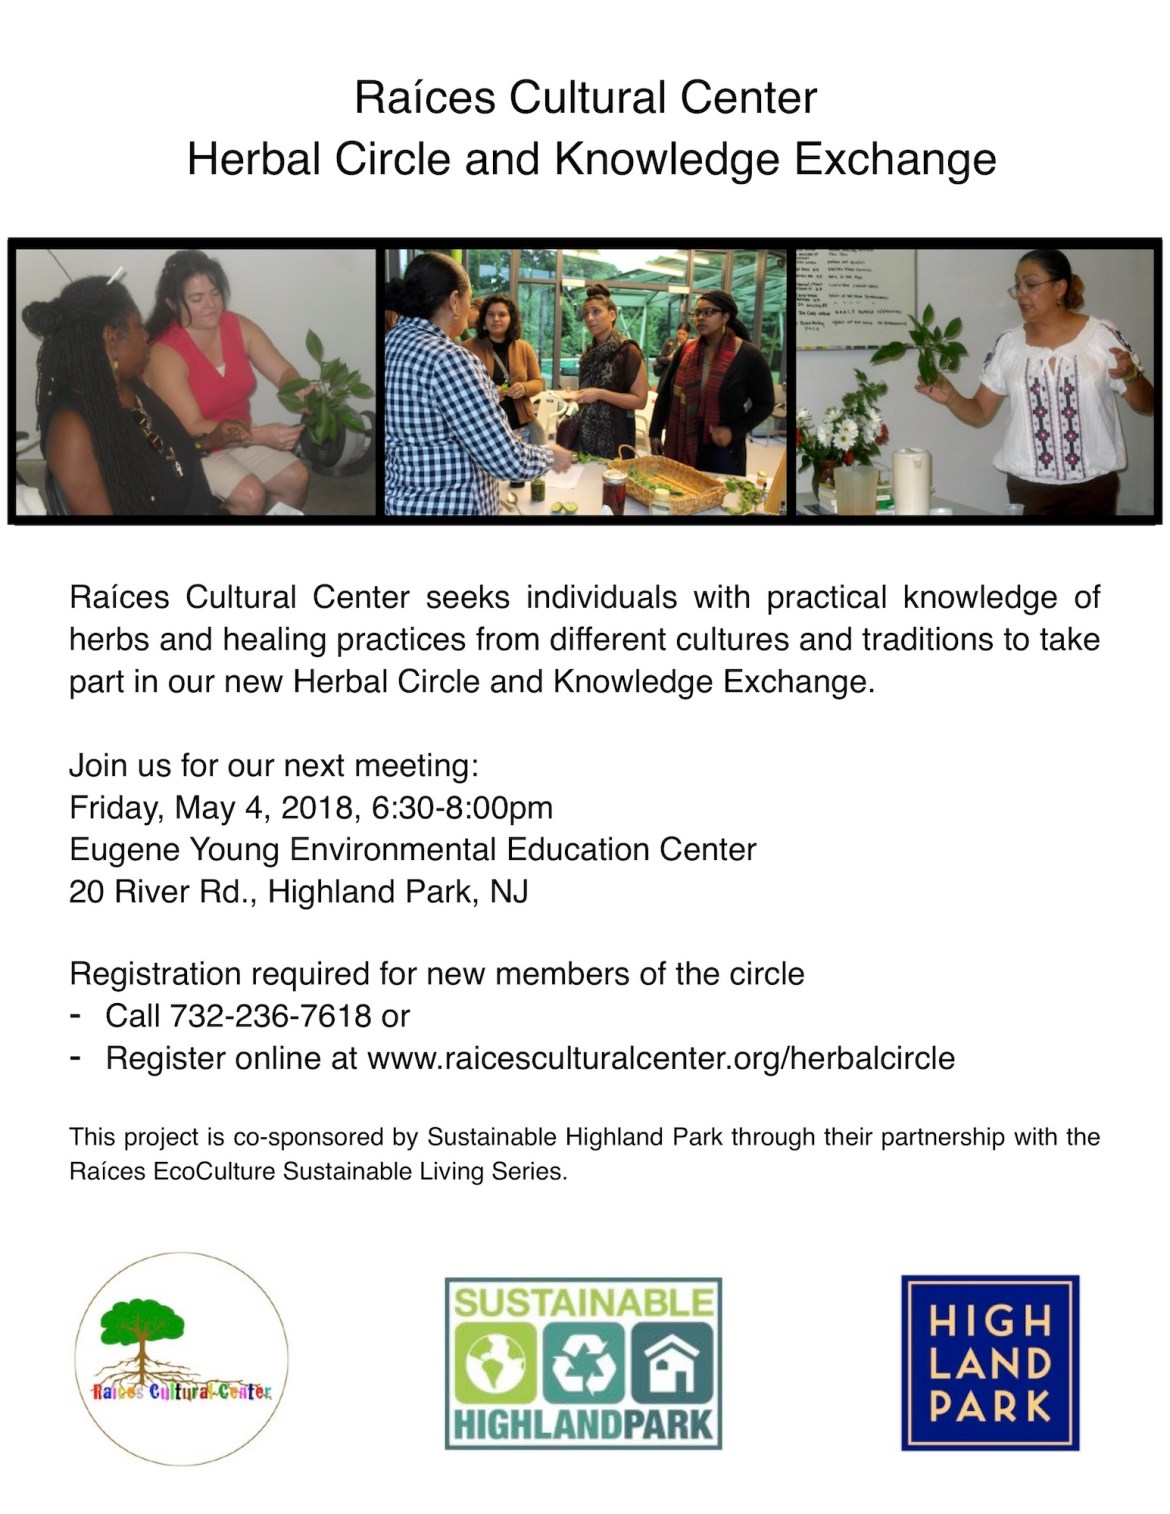 Flyer for Herbal Circle and Knowledge Exchange meeting, Friday, May 4 at 6:30pm at 20 River Road in Highland Park, New Jersey